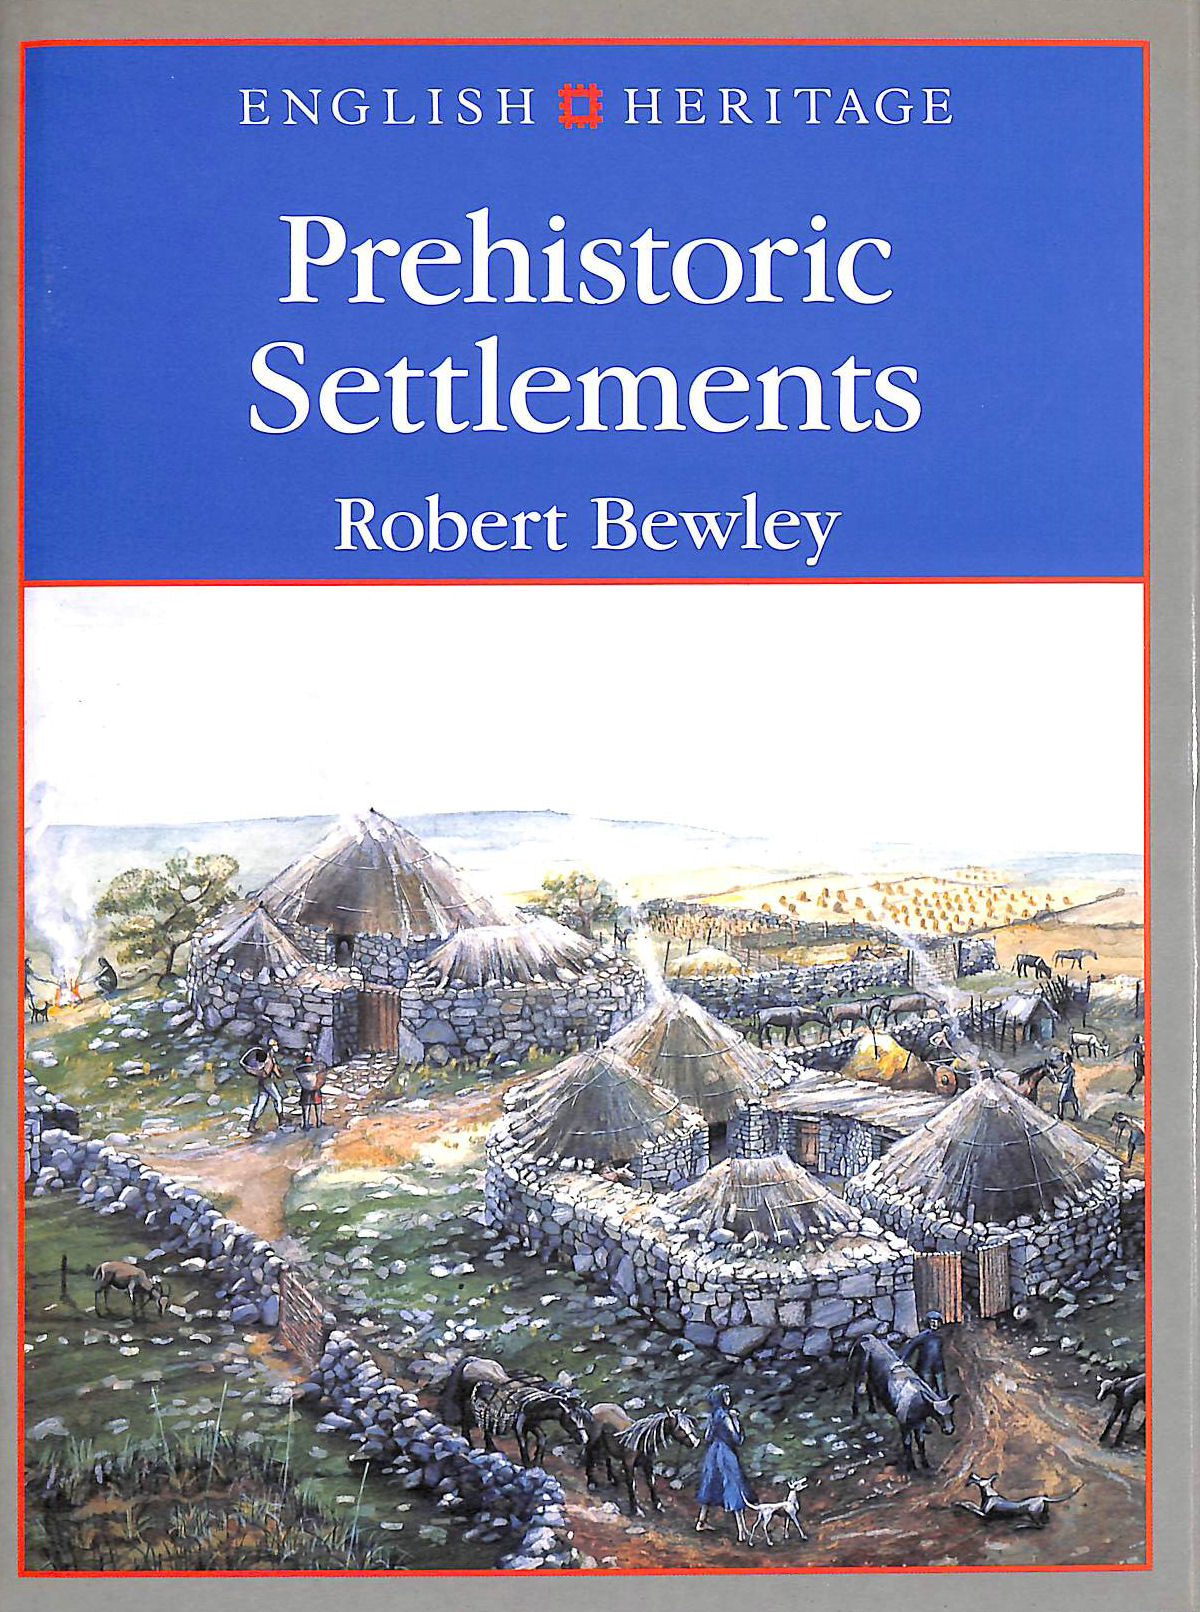 Image for PREHISTORIC SETTLEMENTS (English Heritage)